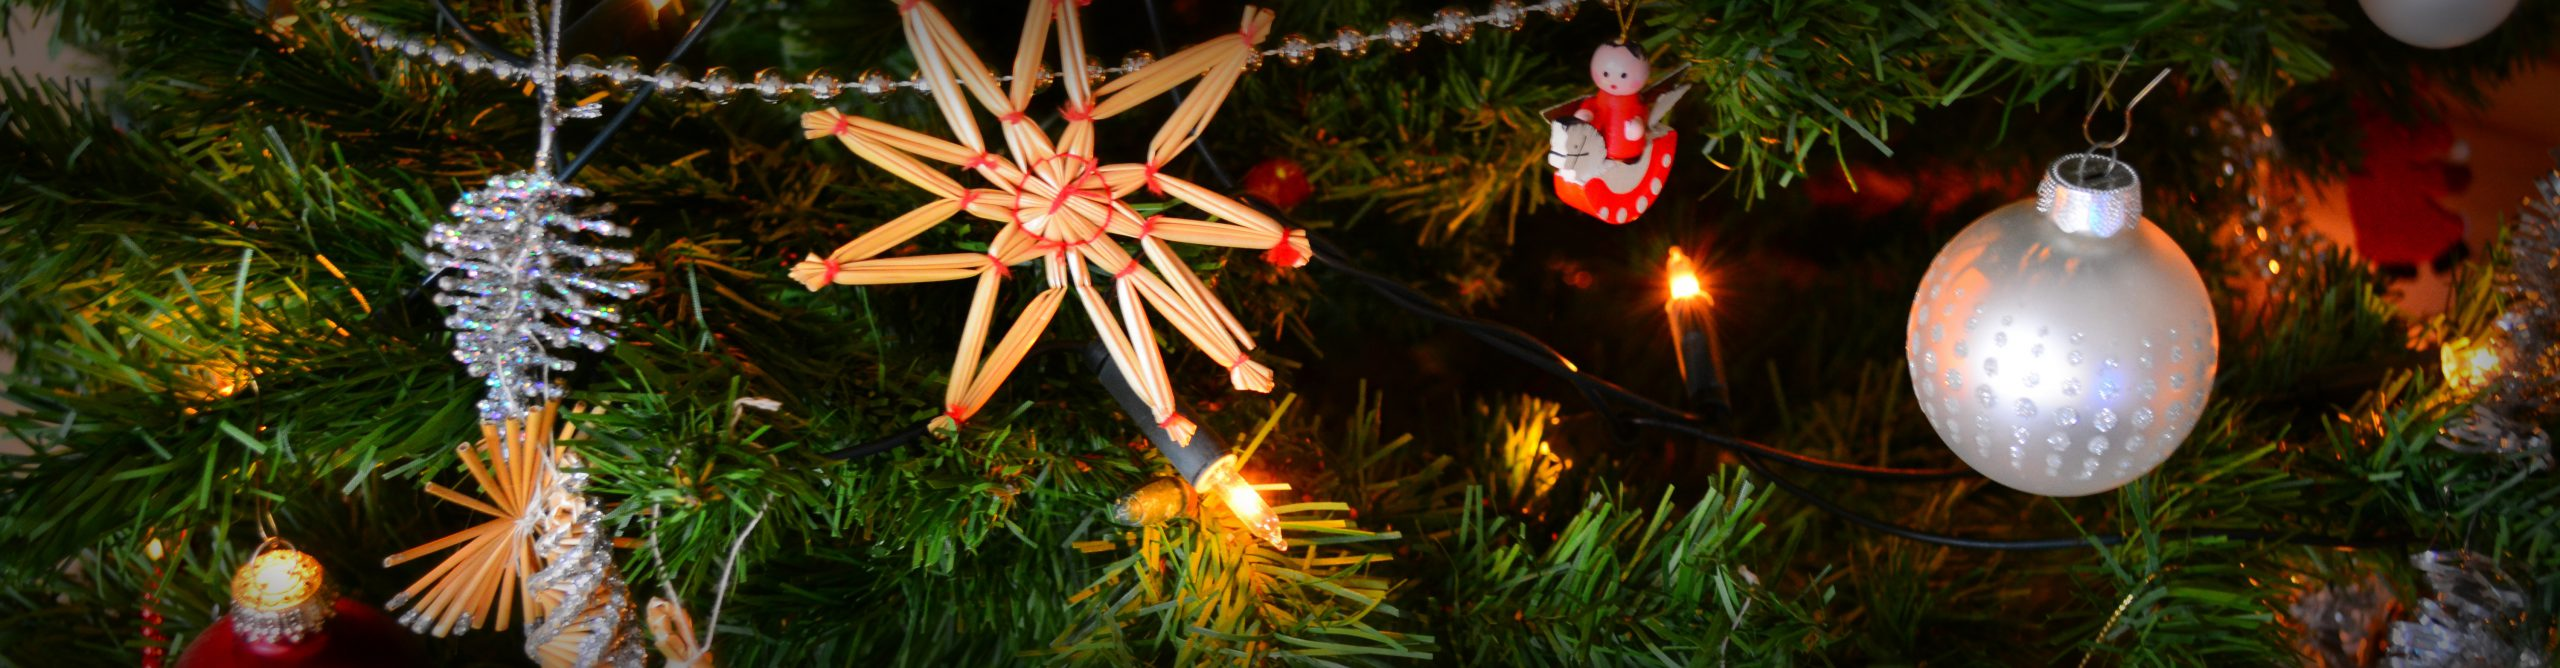 Close up picture of ornaments on a tree.